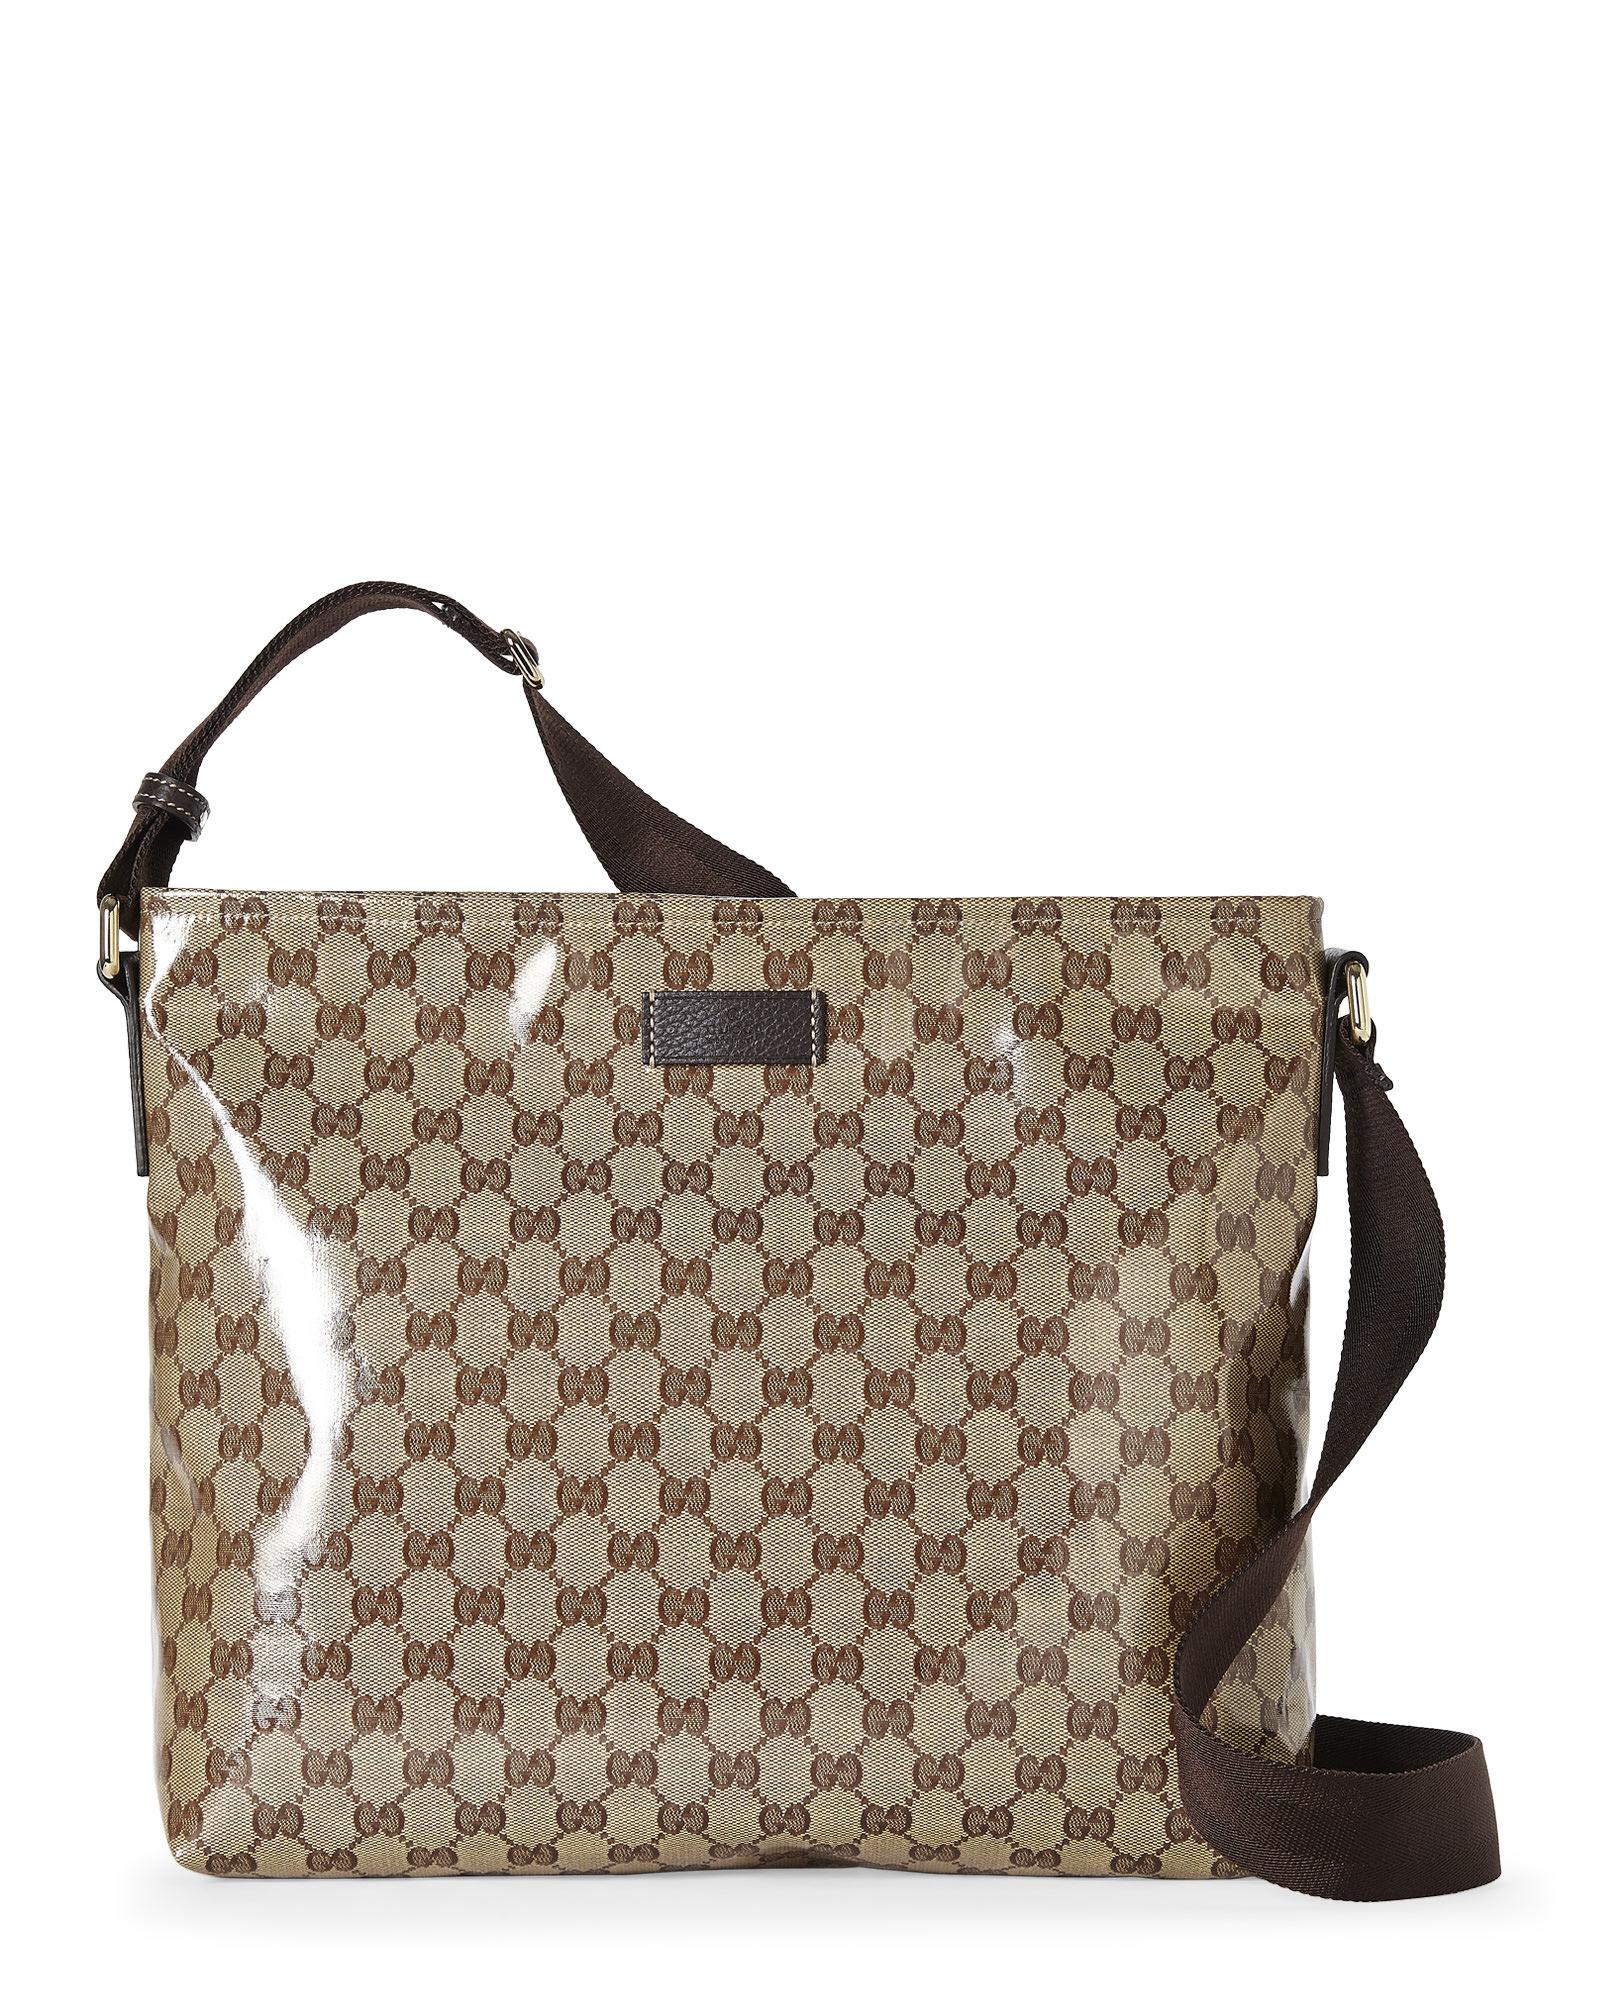 05974136ee6 Lyst - Gucci Beige Gg Crystal Canvas Messenger Bag in Natural